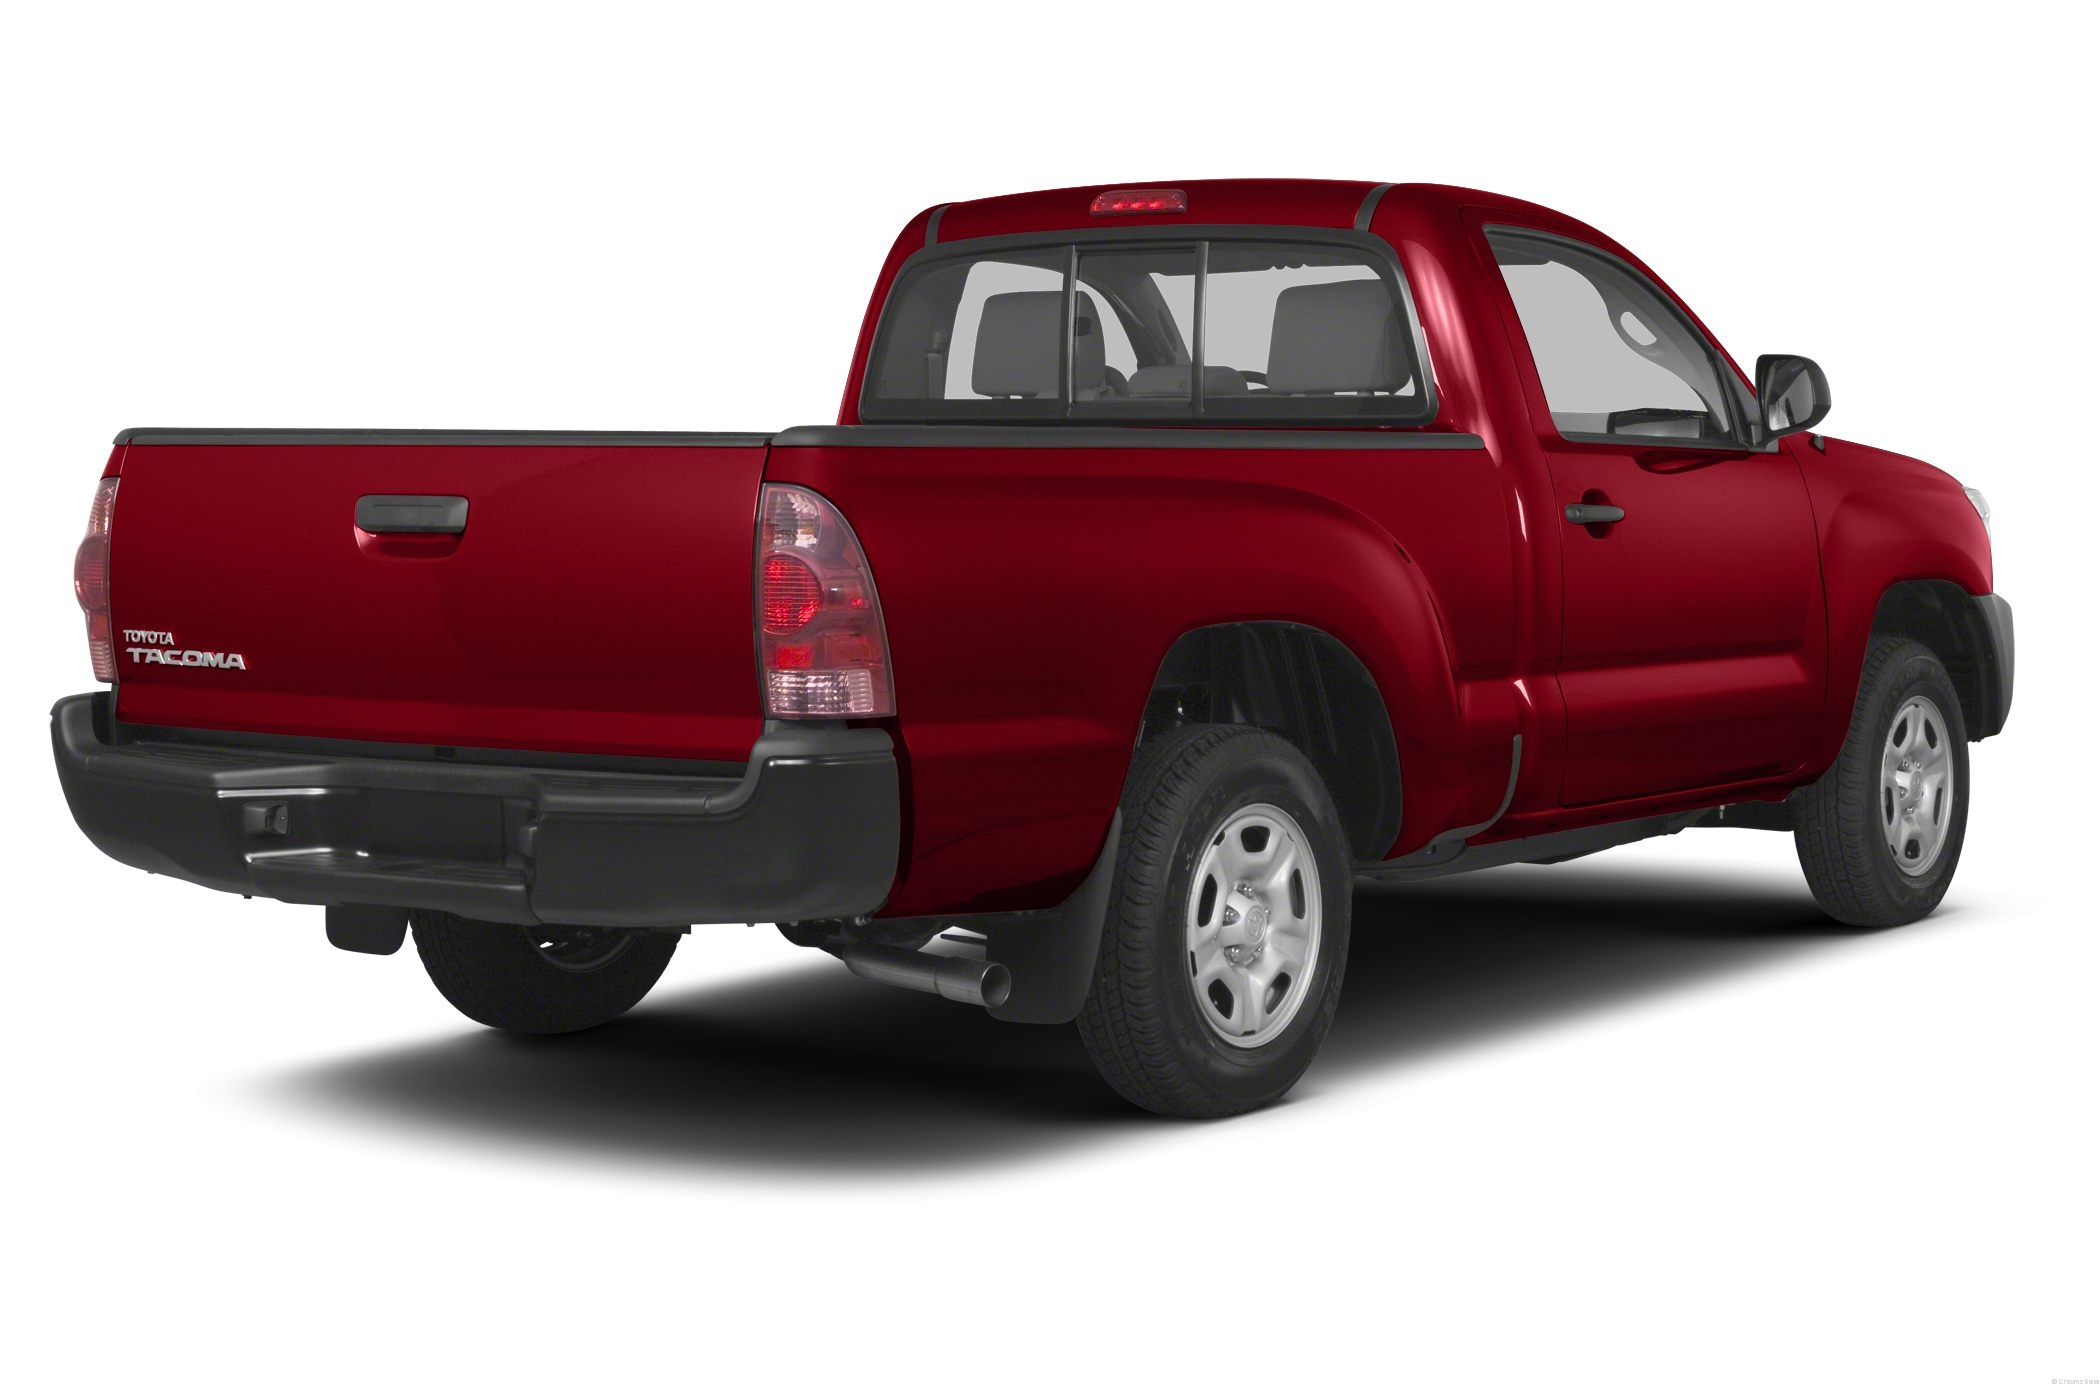 tacoma invoice price price on toyota tacoma autos news information 2100 X 1386